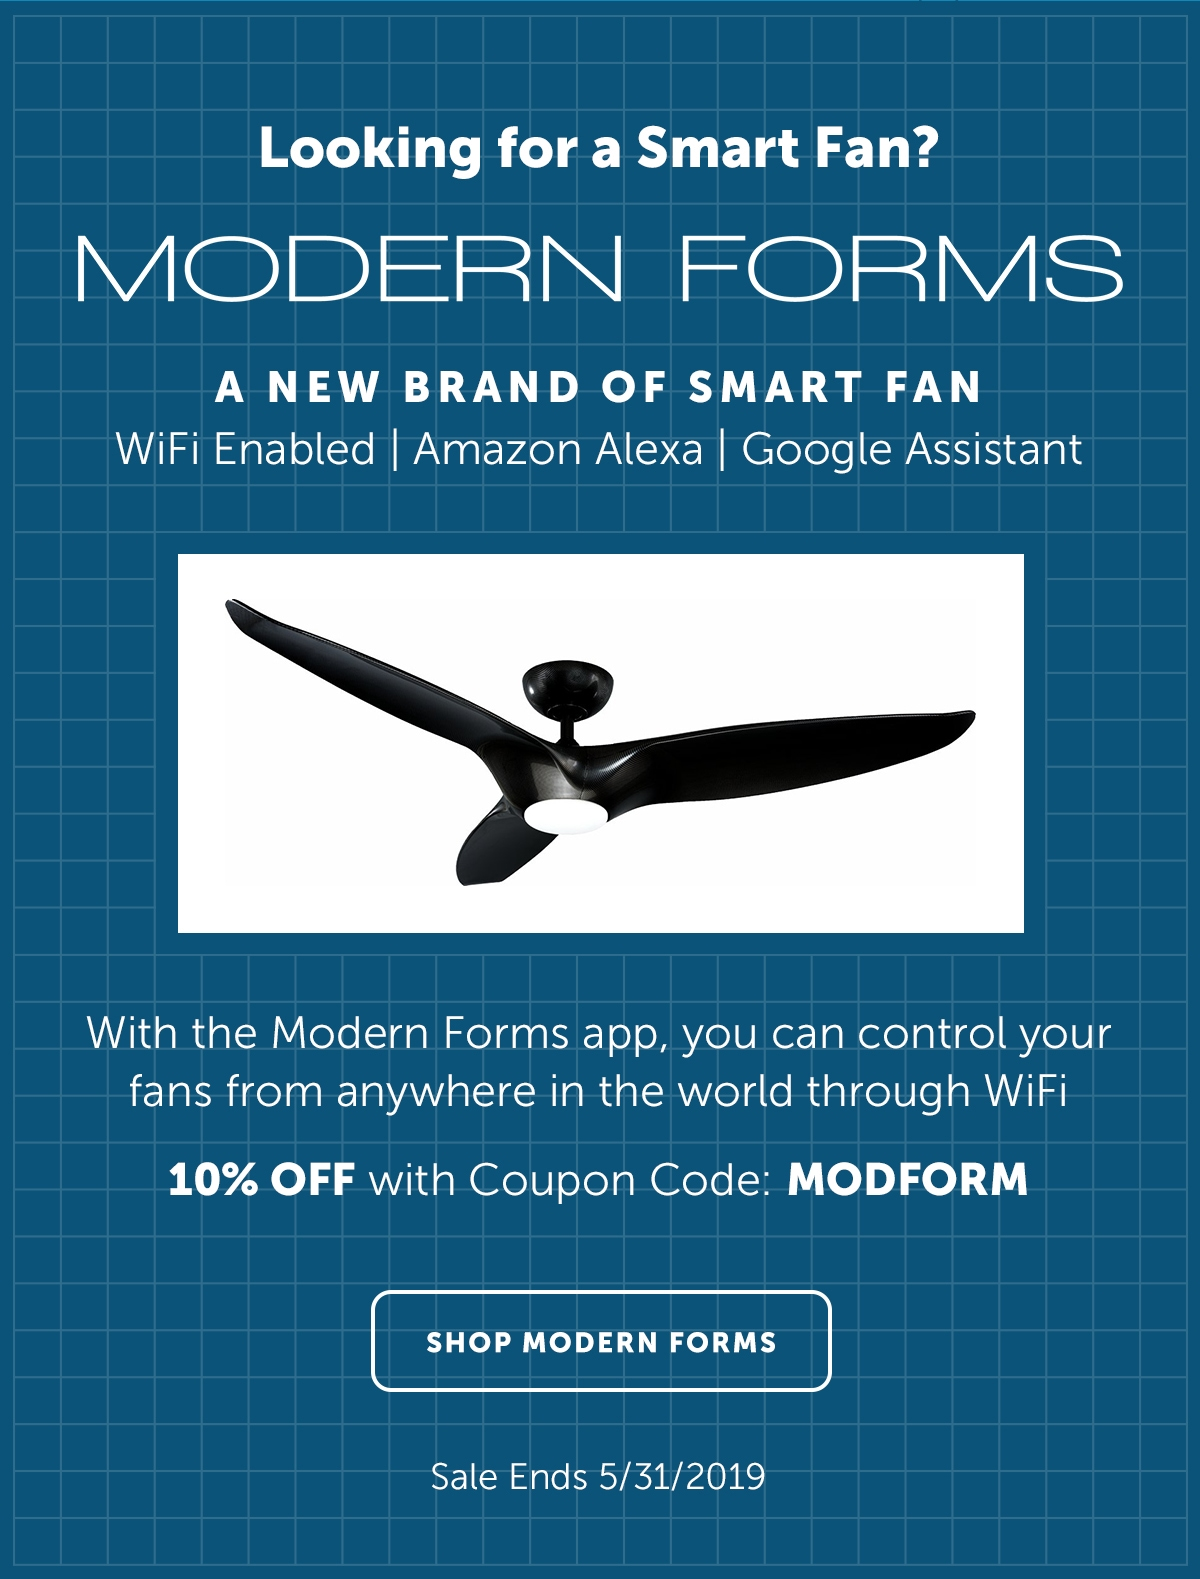 Looking for a Smart Fan? - A new brand of Smart Fan: WiFi Enabled - Amazon Alexa - Google Assistant - With the Modern Forms app, you can control your fans from anywhere in the world through WiFi | 10% OFF w/Coupon Code: MODFORM | Shop Modern Forms Sale Ends: 5/31/2019